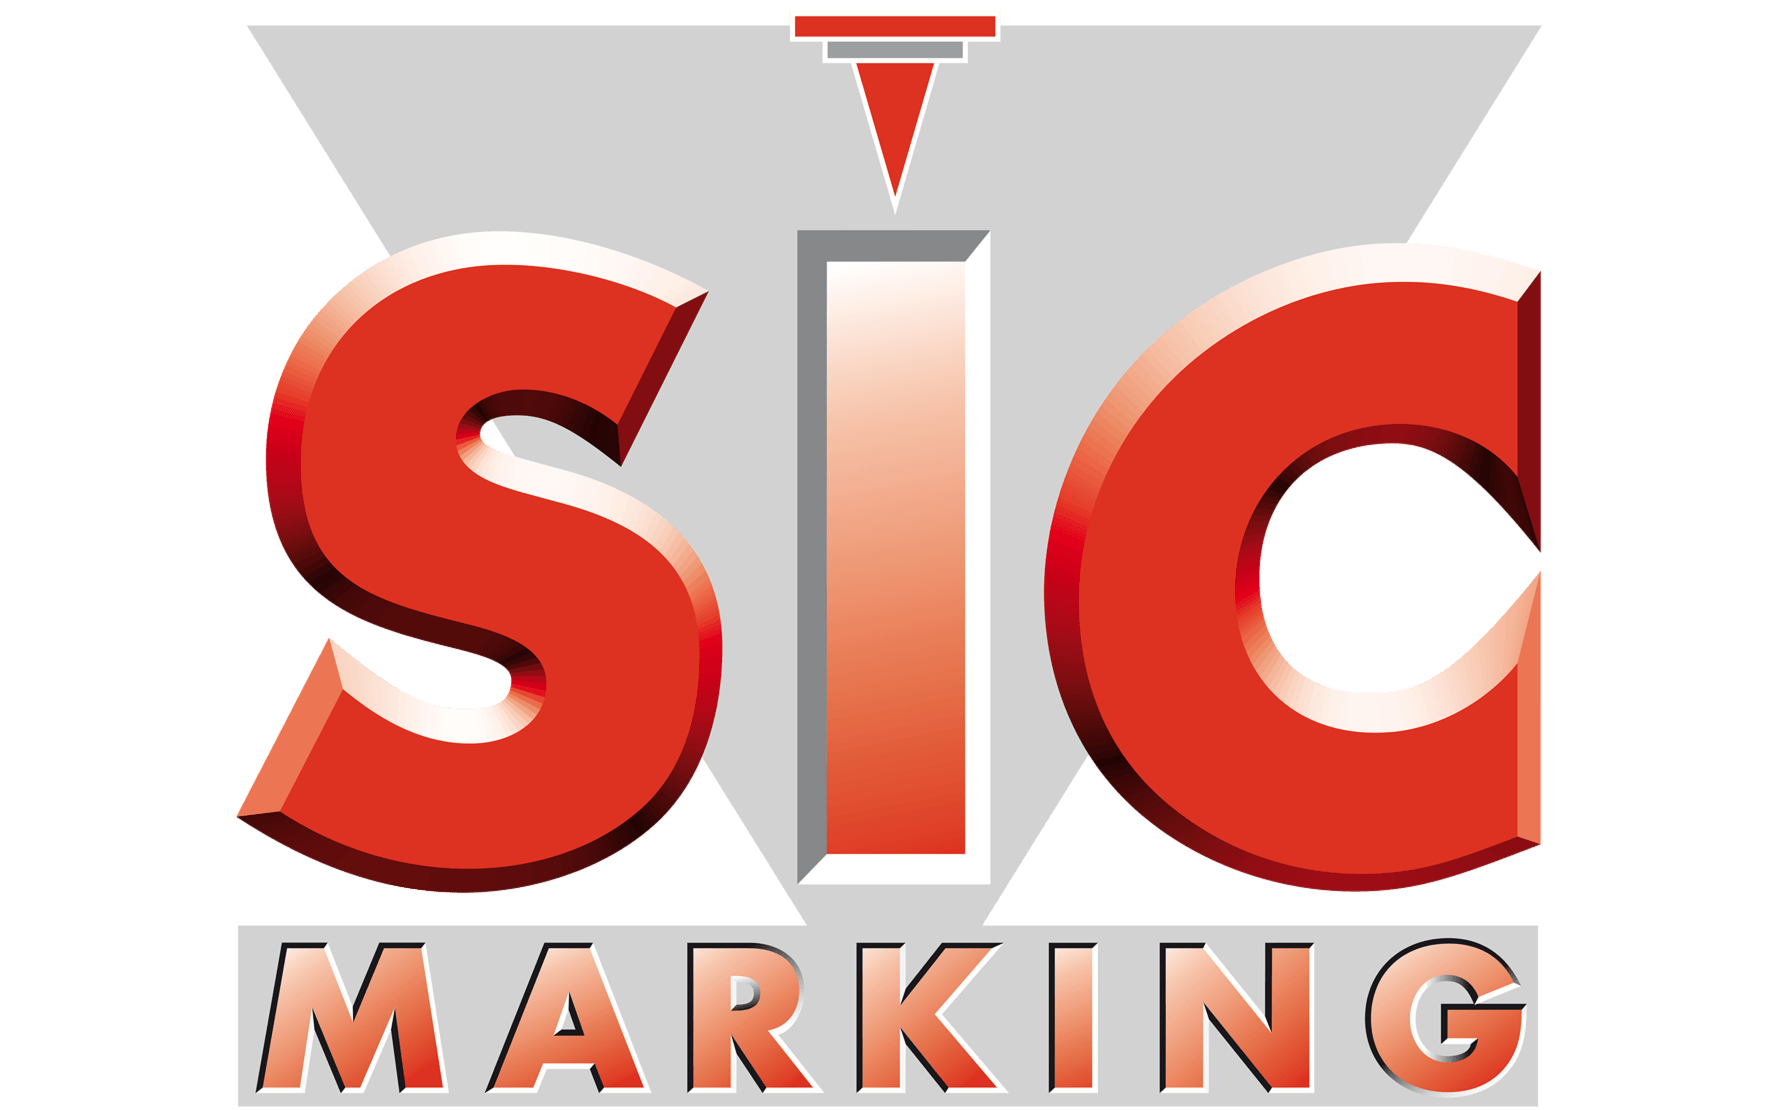 SIC MARKING LTD